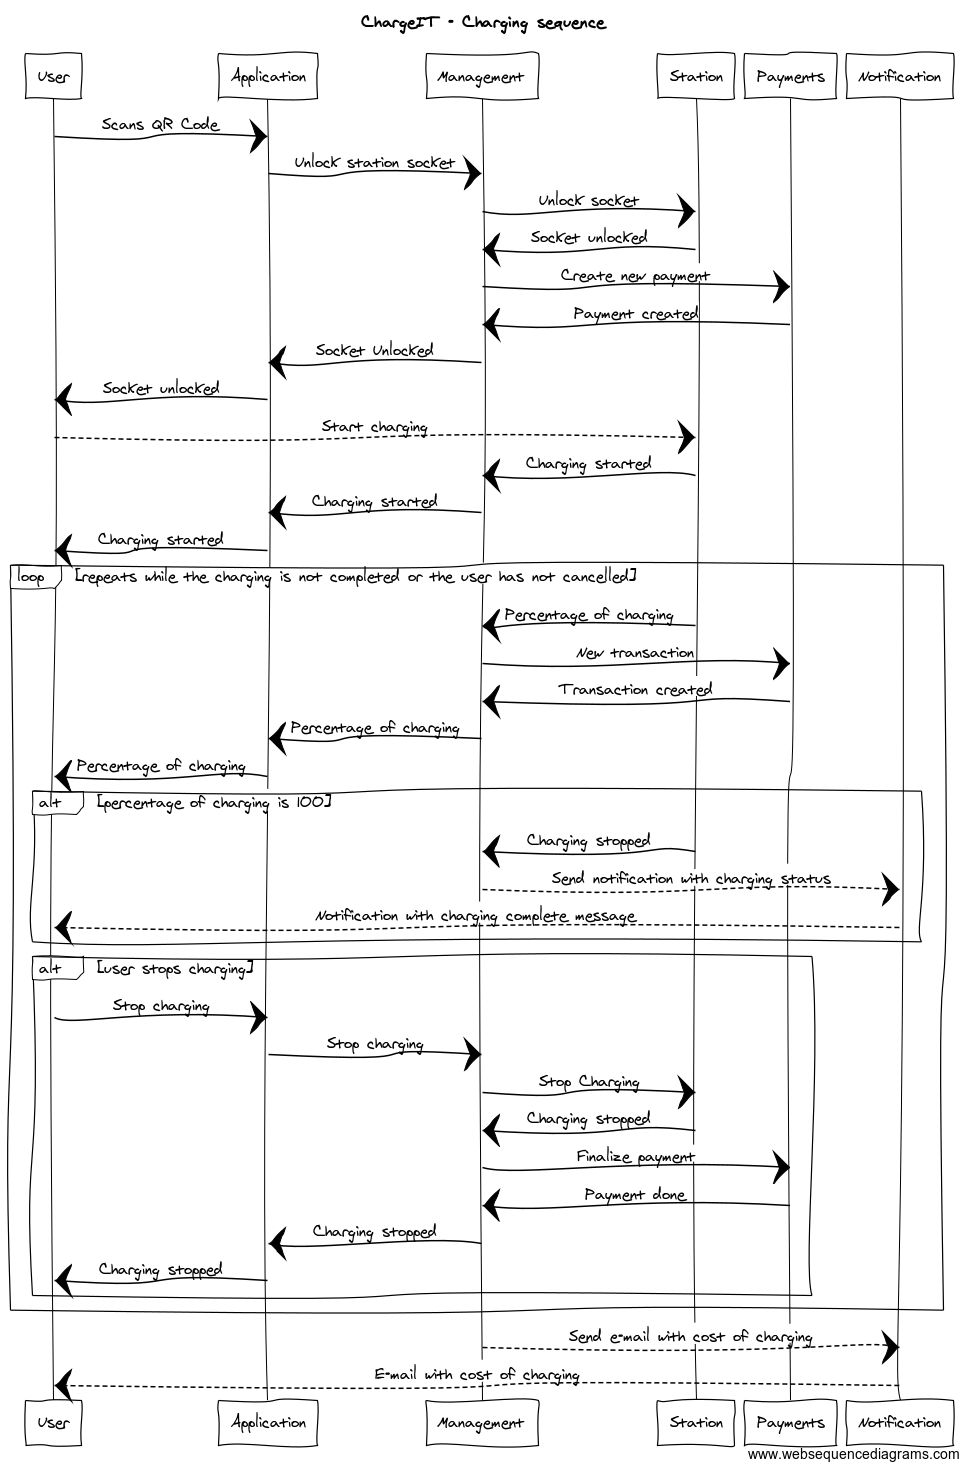 medium resolution of sequence diagram of charging sequence